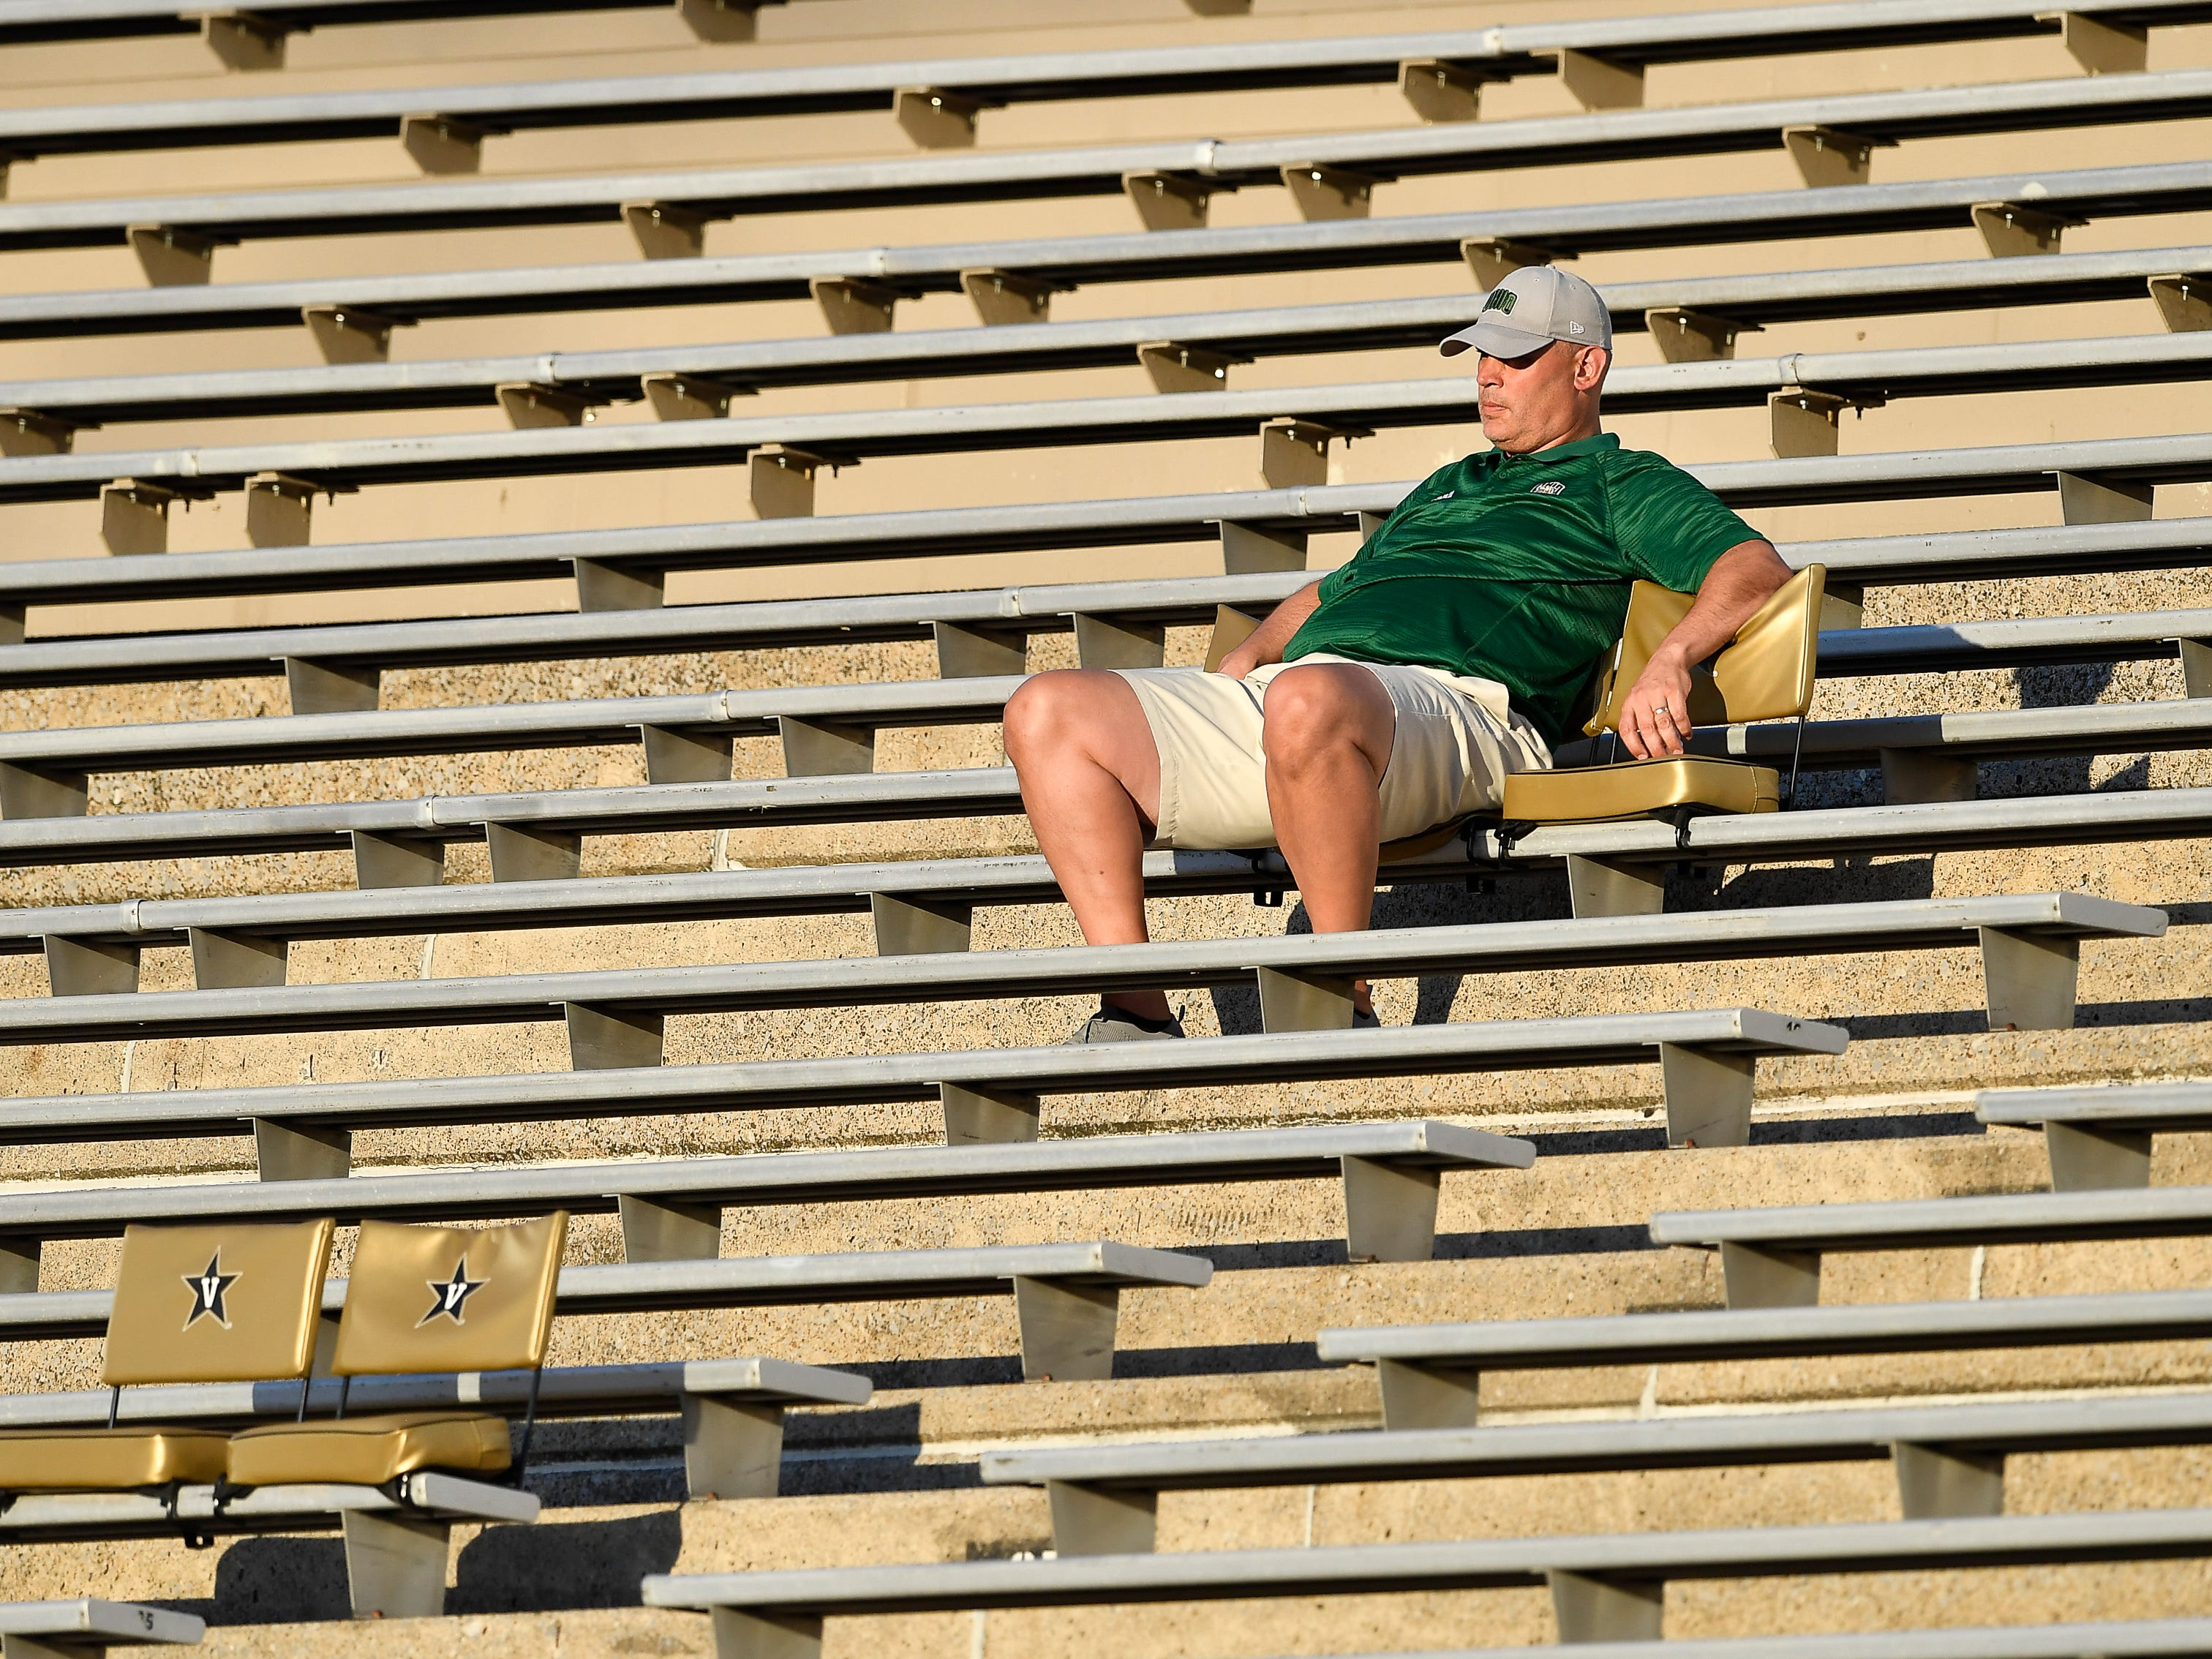 An Ohio fan watches his Bobcats as they play against Virginia Saturday, Sept. 15, 2018, in Nashville, Tenn. at Vanderbilt Stadium. Their football game was moved from Virginia to Tennessee to avoid the effects of Hurricane Florence.